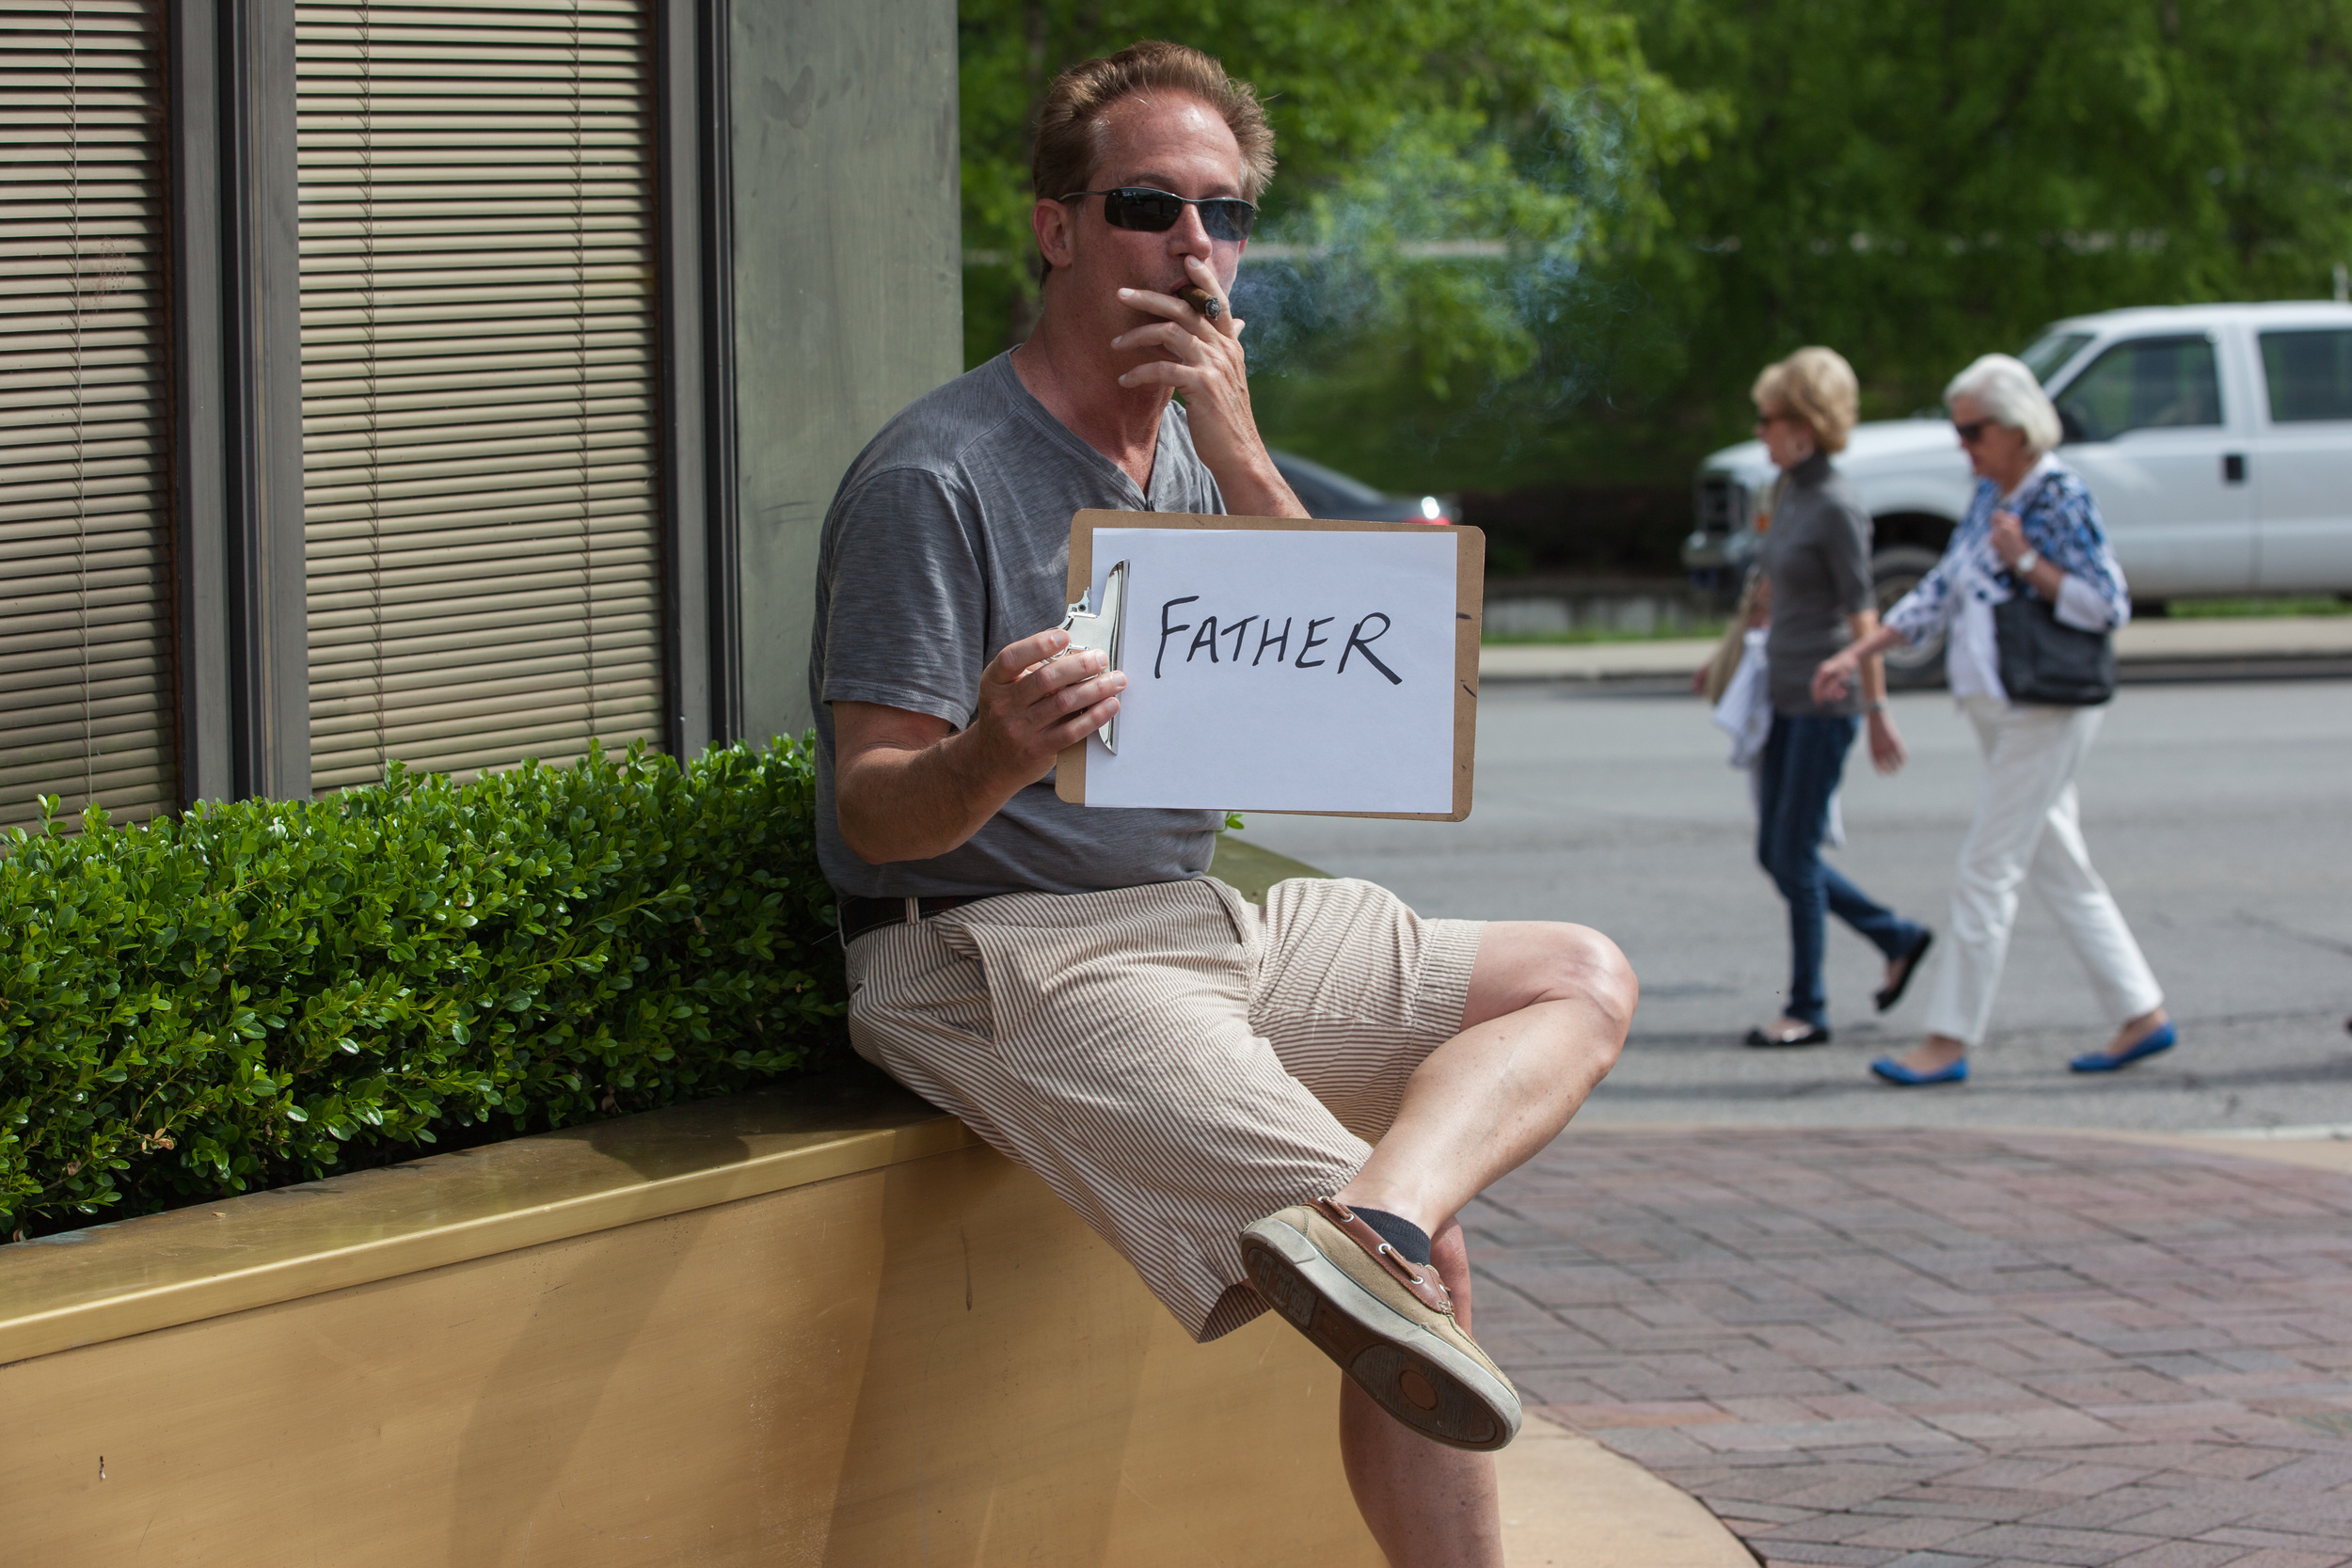 Man smoking a cigar while holding a sign that says father.